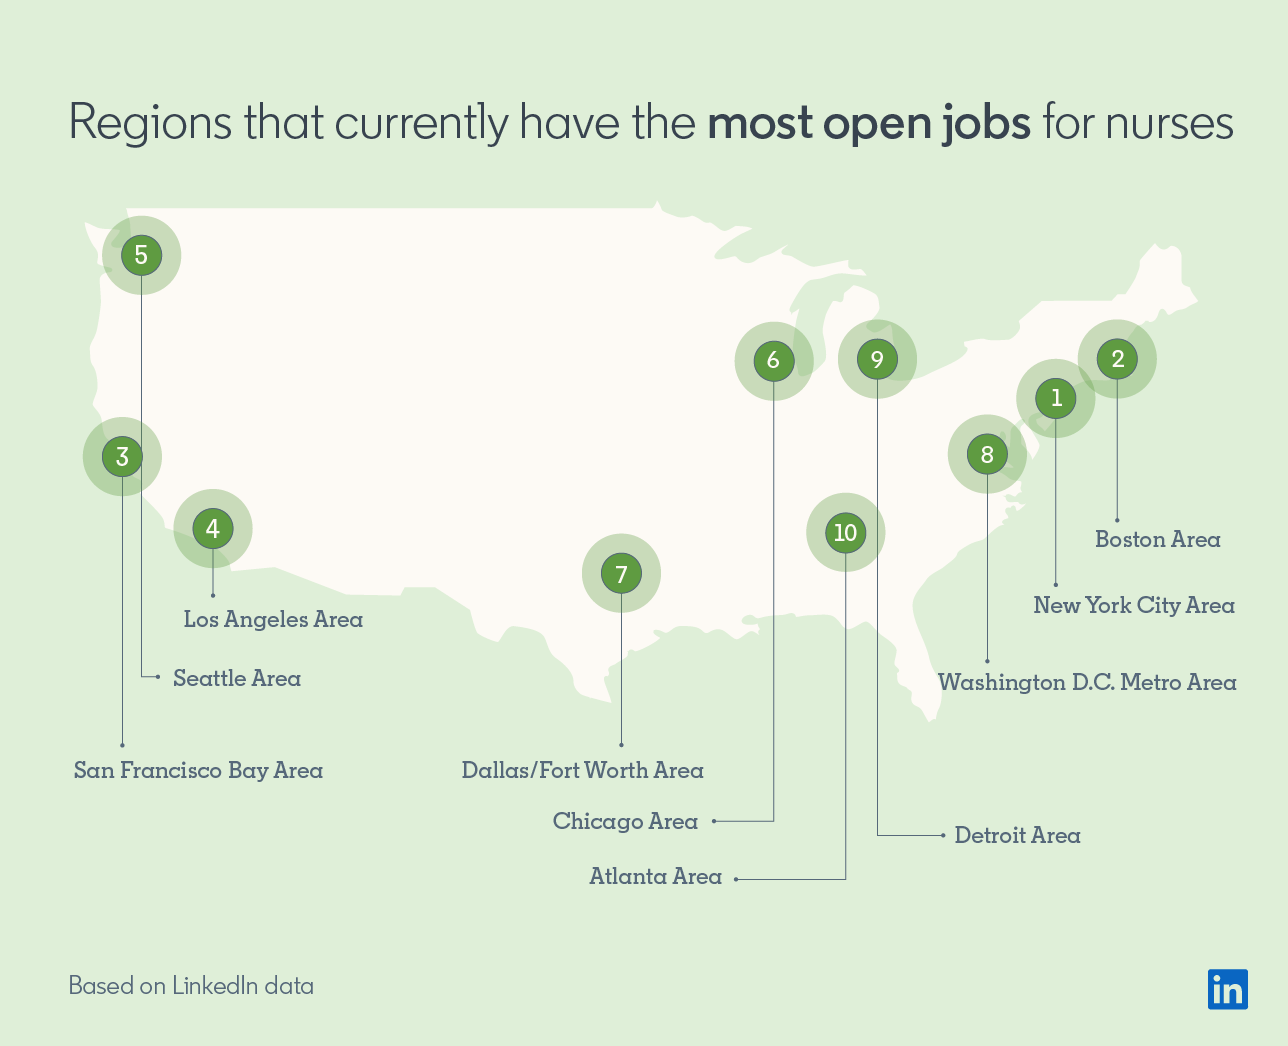 Regions that currently have the most open jobs for nurses  1. New York City Area 2. Boston Area 3. San Francisco Bay Area 4. Los Angeles Area 5. Seattle Area 6. Chicago Area 7. Dallas/Forth Worth Area 8. Washington D.C. Metro Area 9. Detroit Area 10. Atlanta Area  *Based on LinkedIn data